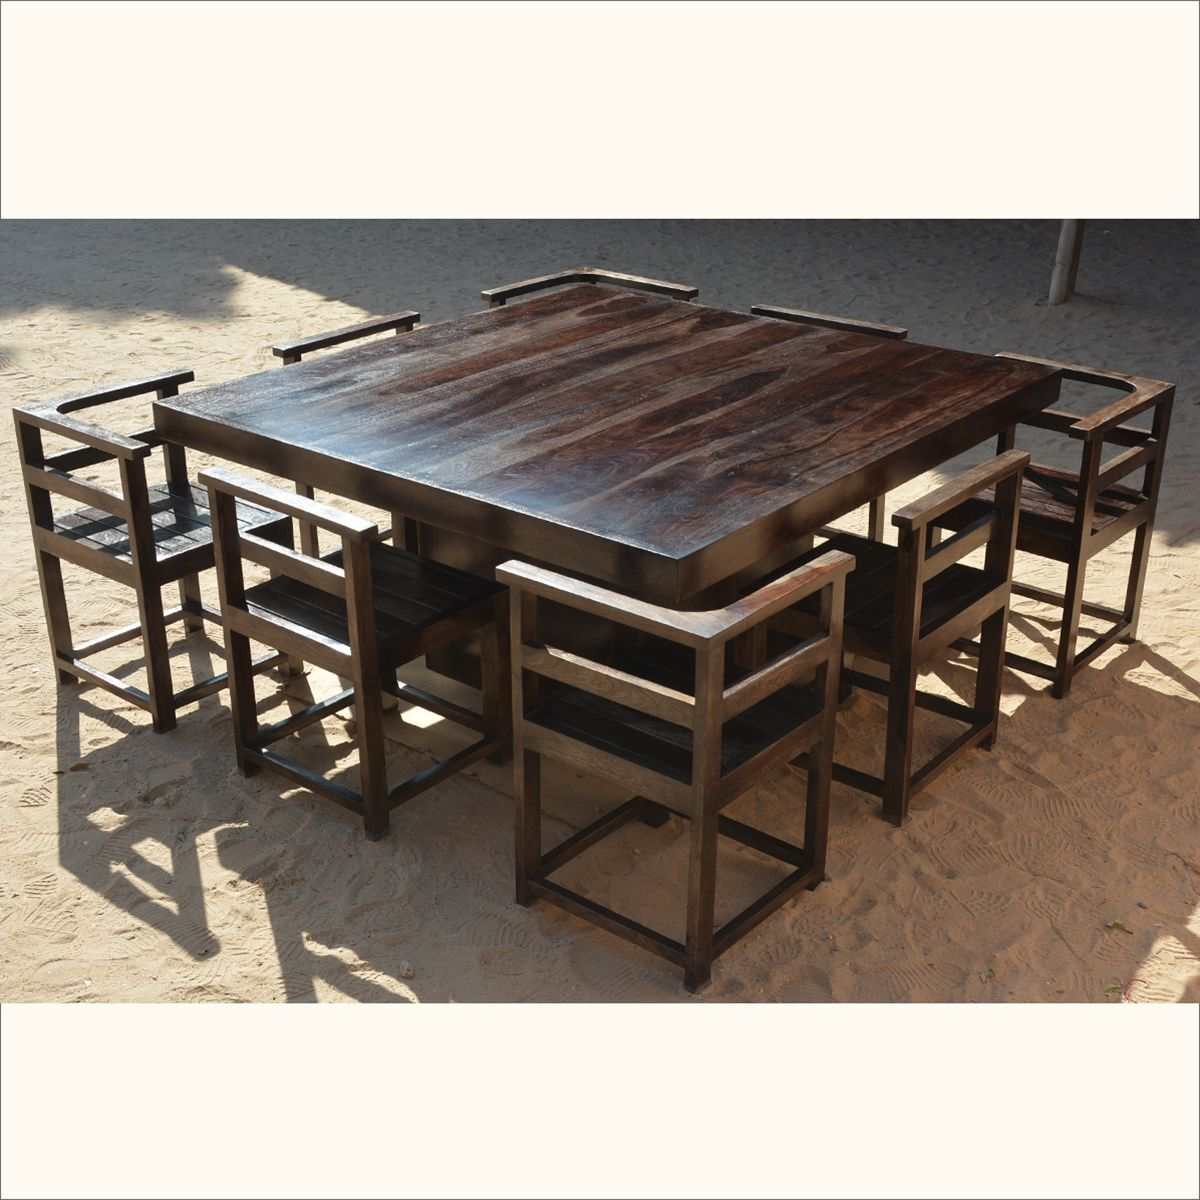 8 Chair Square Dining Table: Square Dining Tables, Square